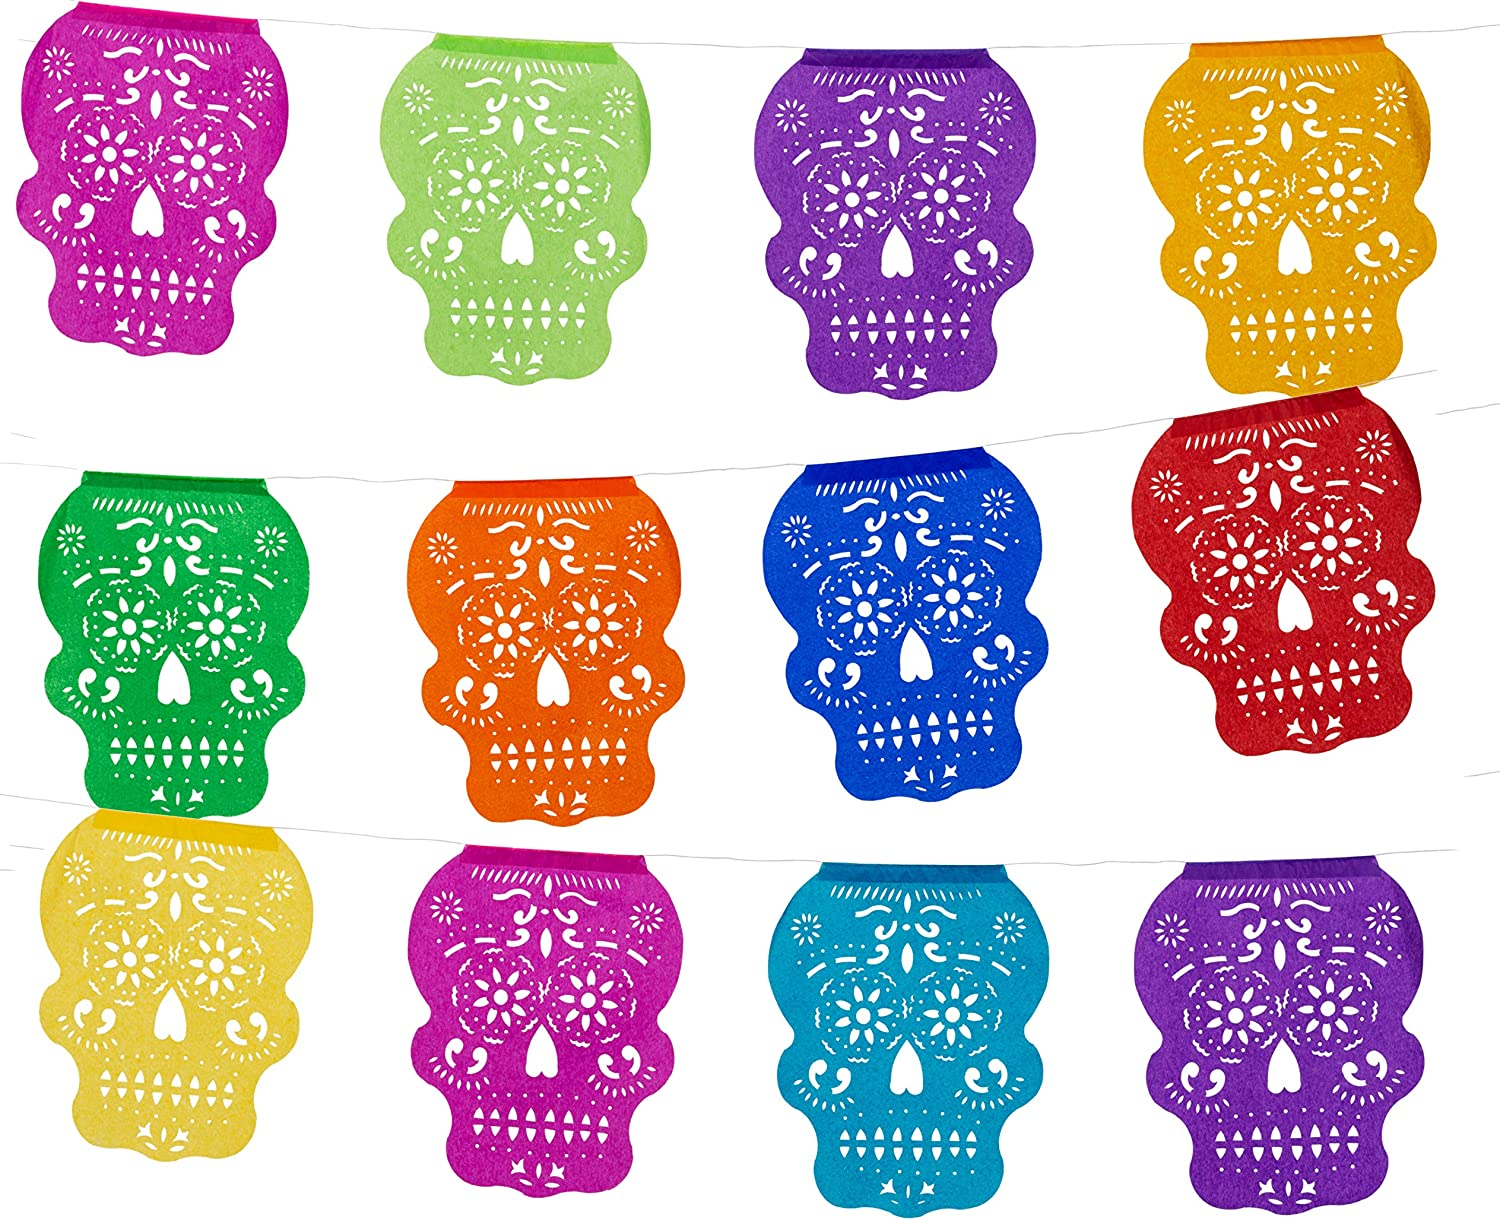 Tissue Papel Picado Banner for Day of The Dead/Dia De Los Muertos - Cabezita Calavera - Multi Color Banner - 12 Tissue Panels - Over 12 Feet Long Hanging